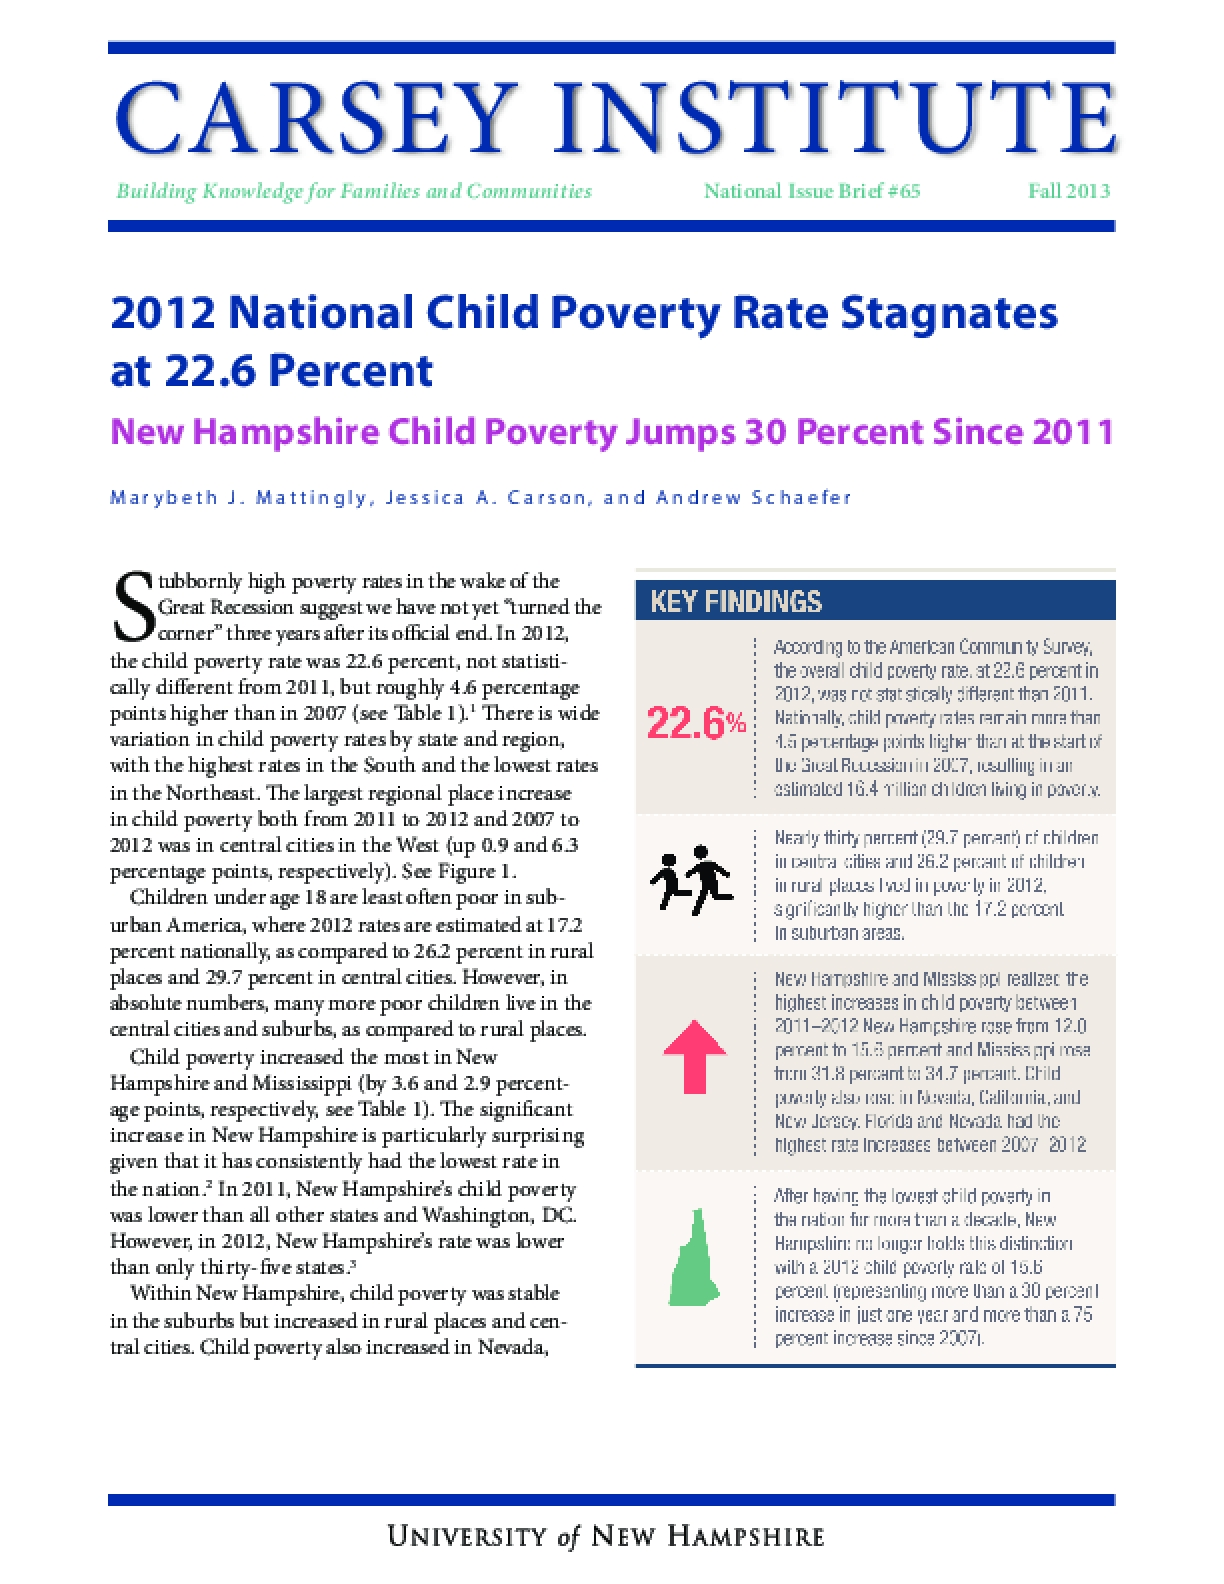 2012 National Child Poverty Rate Stagnates at 22.6 Percent